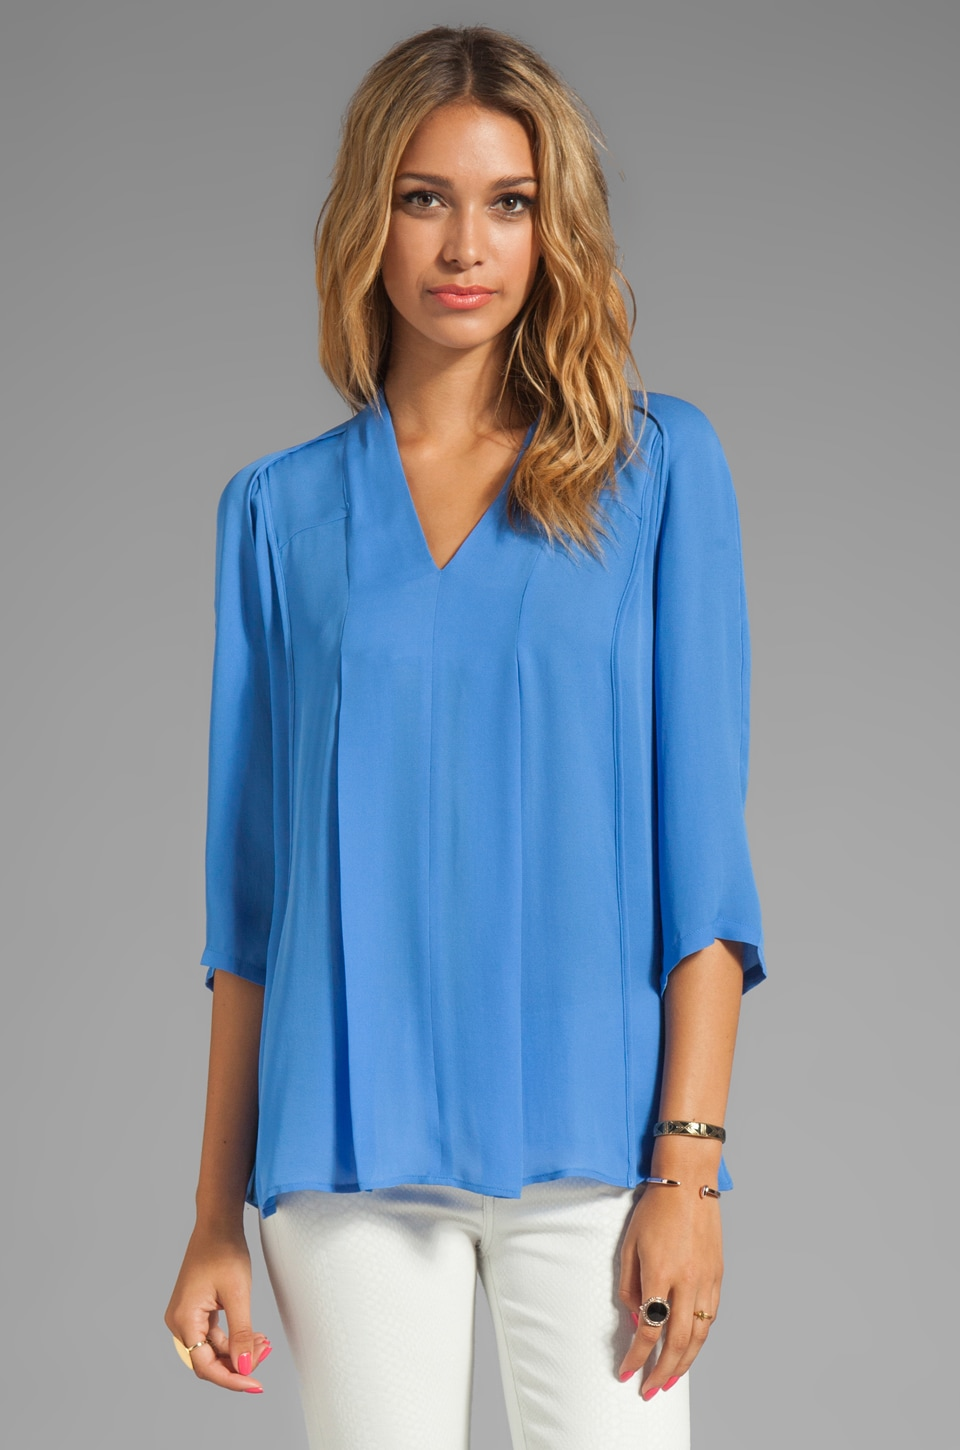 Halston Heritage Washed Silk Double Georgette Top in Sky Blue